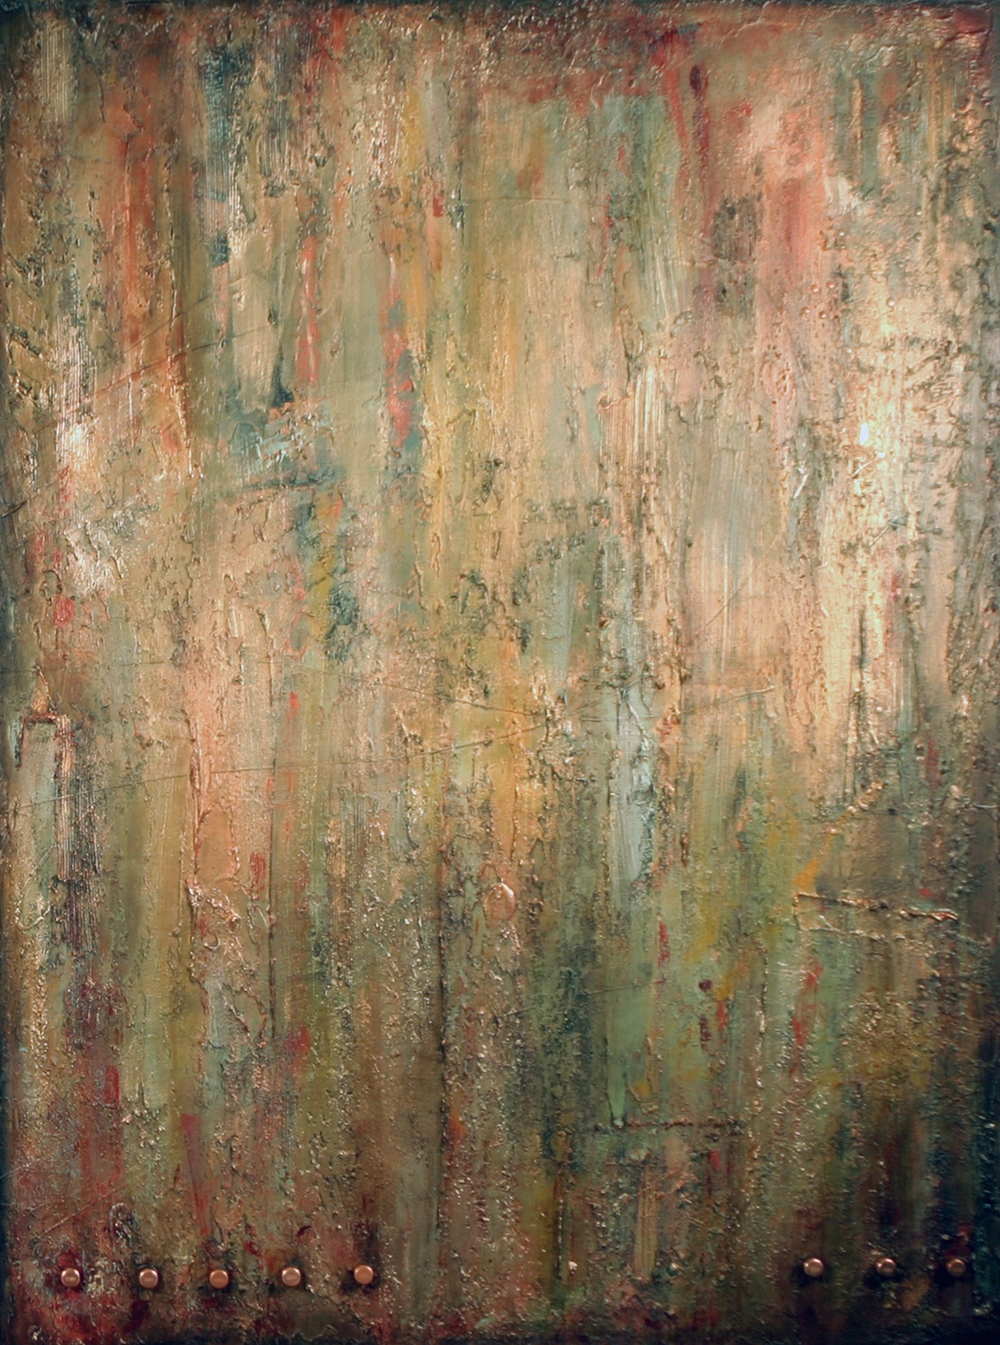 liberated spirits  48 x 36 x 1.5 inches  mixed media + copper on canvas  $4200 USD